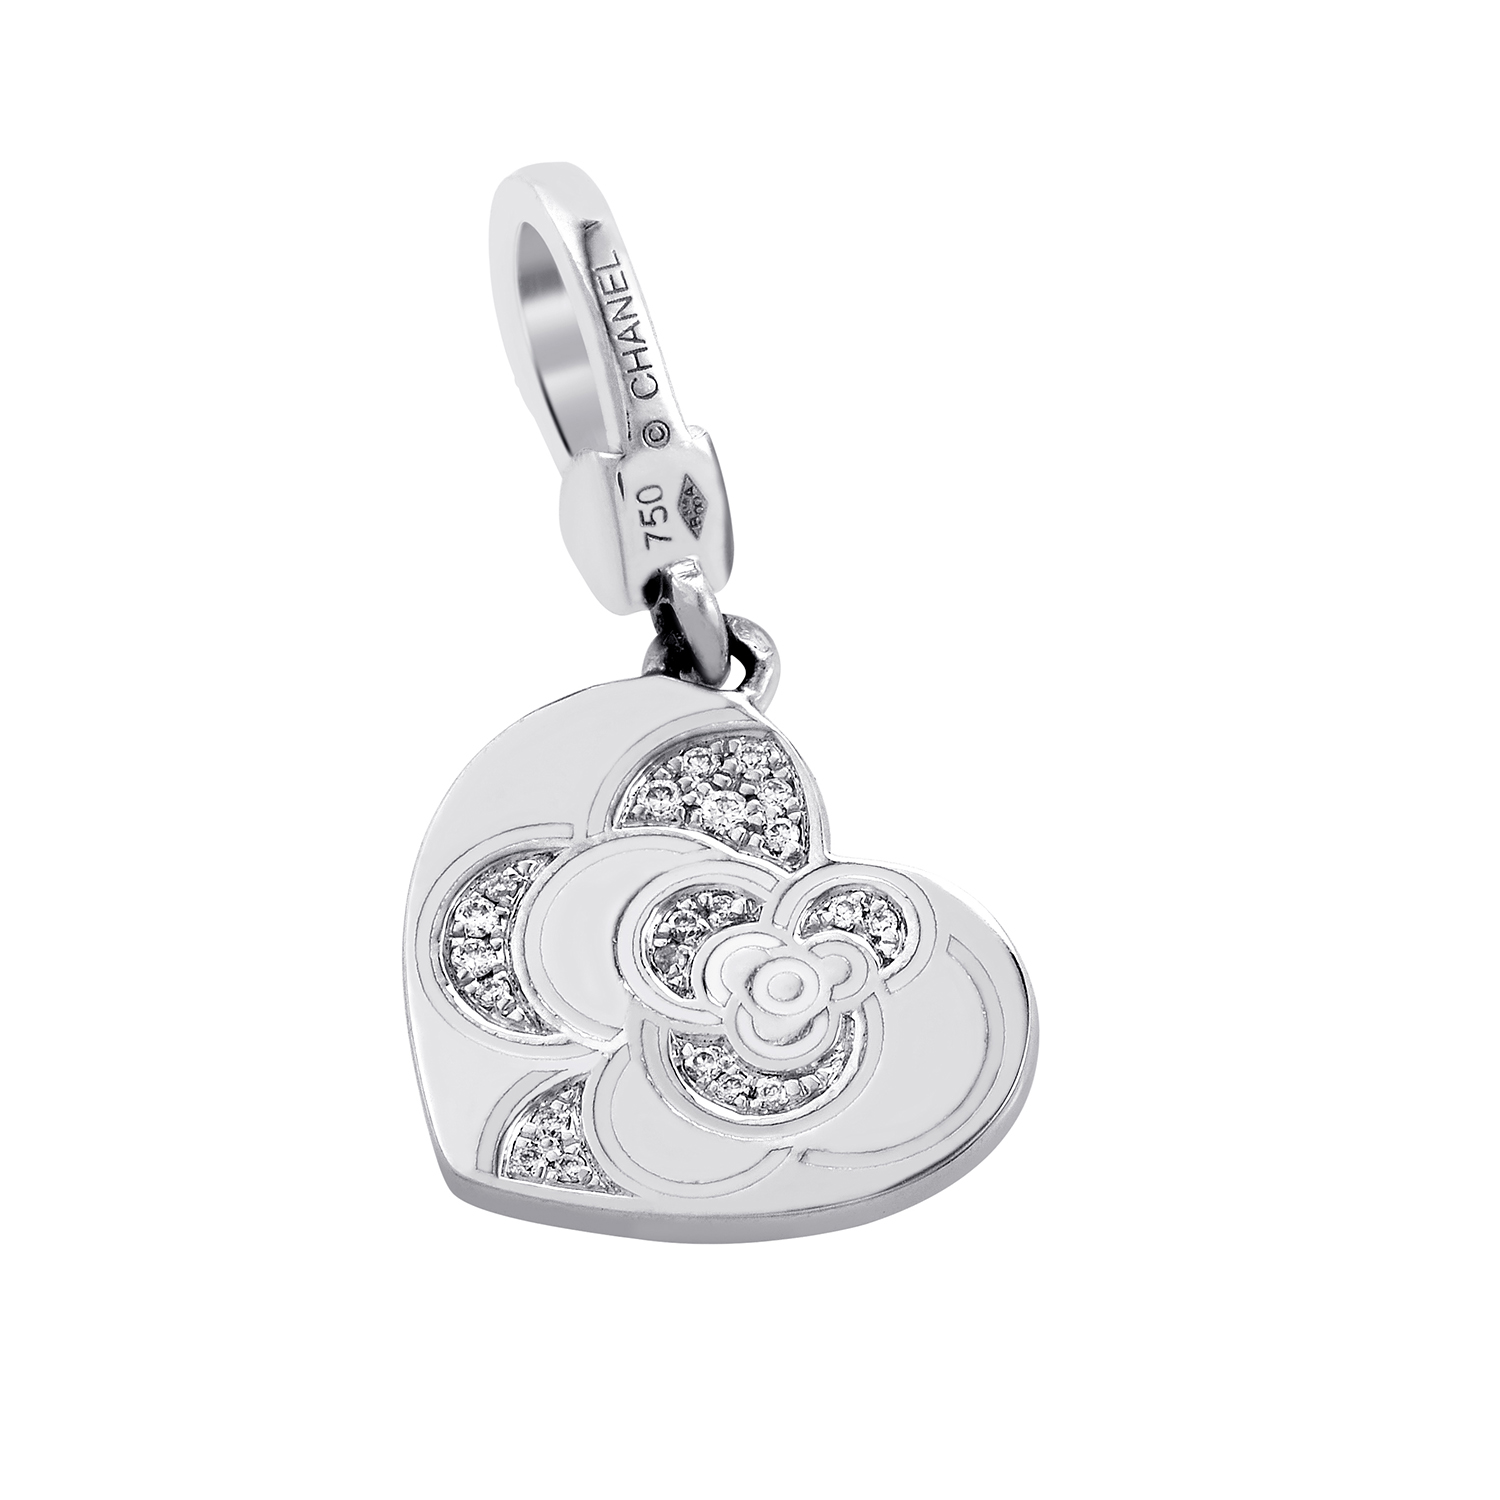 Chanel Camelia Heart 18K White Gold Diamond Charm